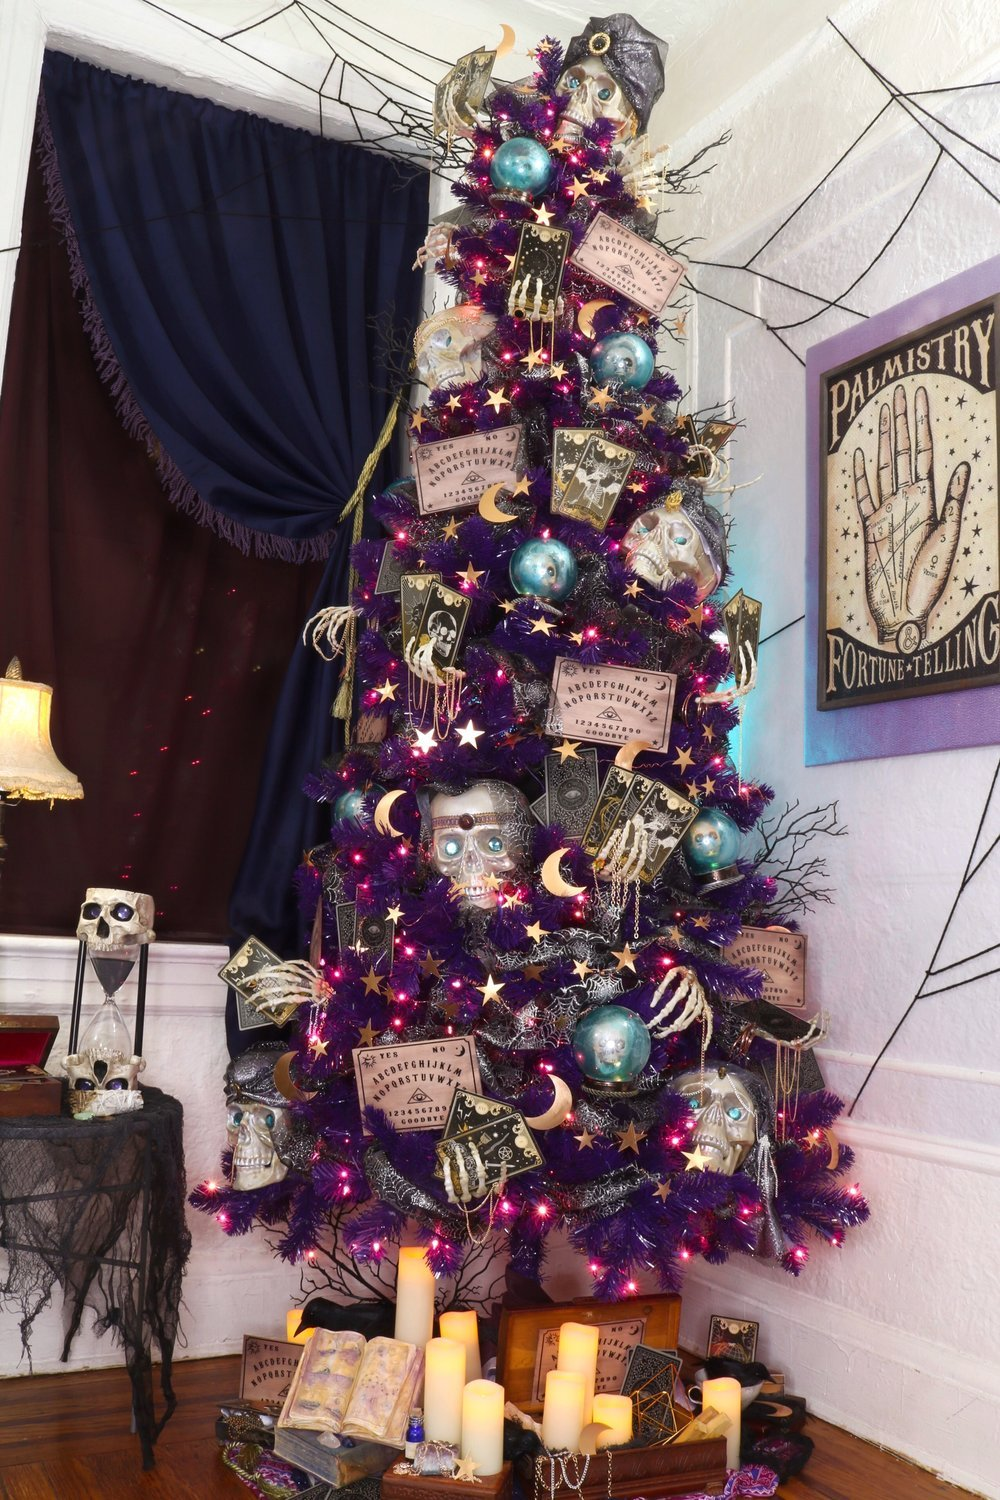 Psychic Fortune Teller Halloween Tree Diy and Treetopia Giveaway! #Halloween #Halloweendecor #halloweendiy #hauntedhouse #halloweentree #halloweenornamnets #psychic #fortuneteller #mystical #treetopia #halloweengiveaway #halloweenchristmastree #notsospookyhalloween #skeleton #fortune #vintagehalloween #purpletree #TreetopiaScaryRooms #TreetopiaHalloween #TreetopiaScavengerHunt